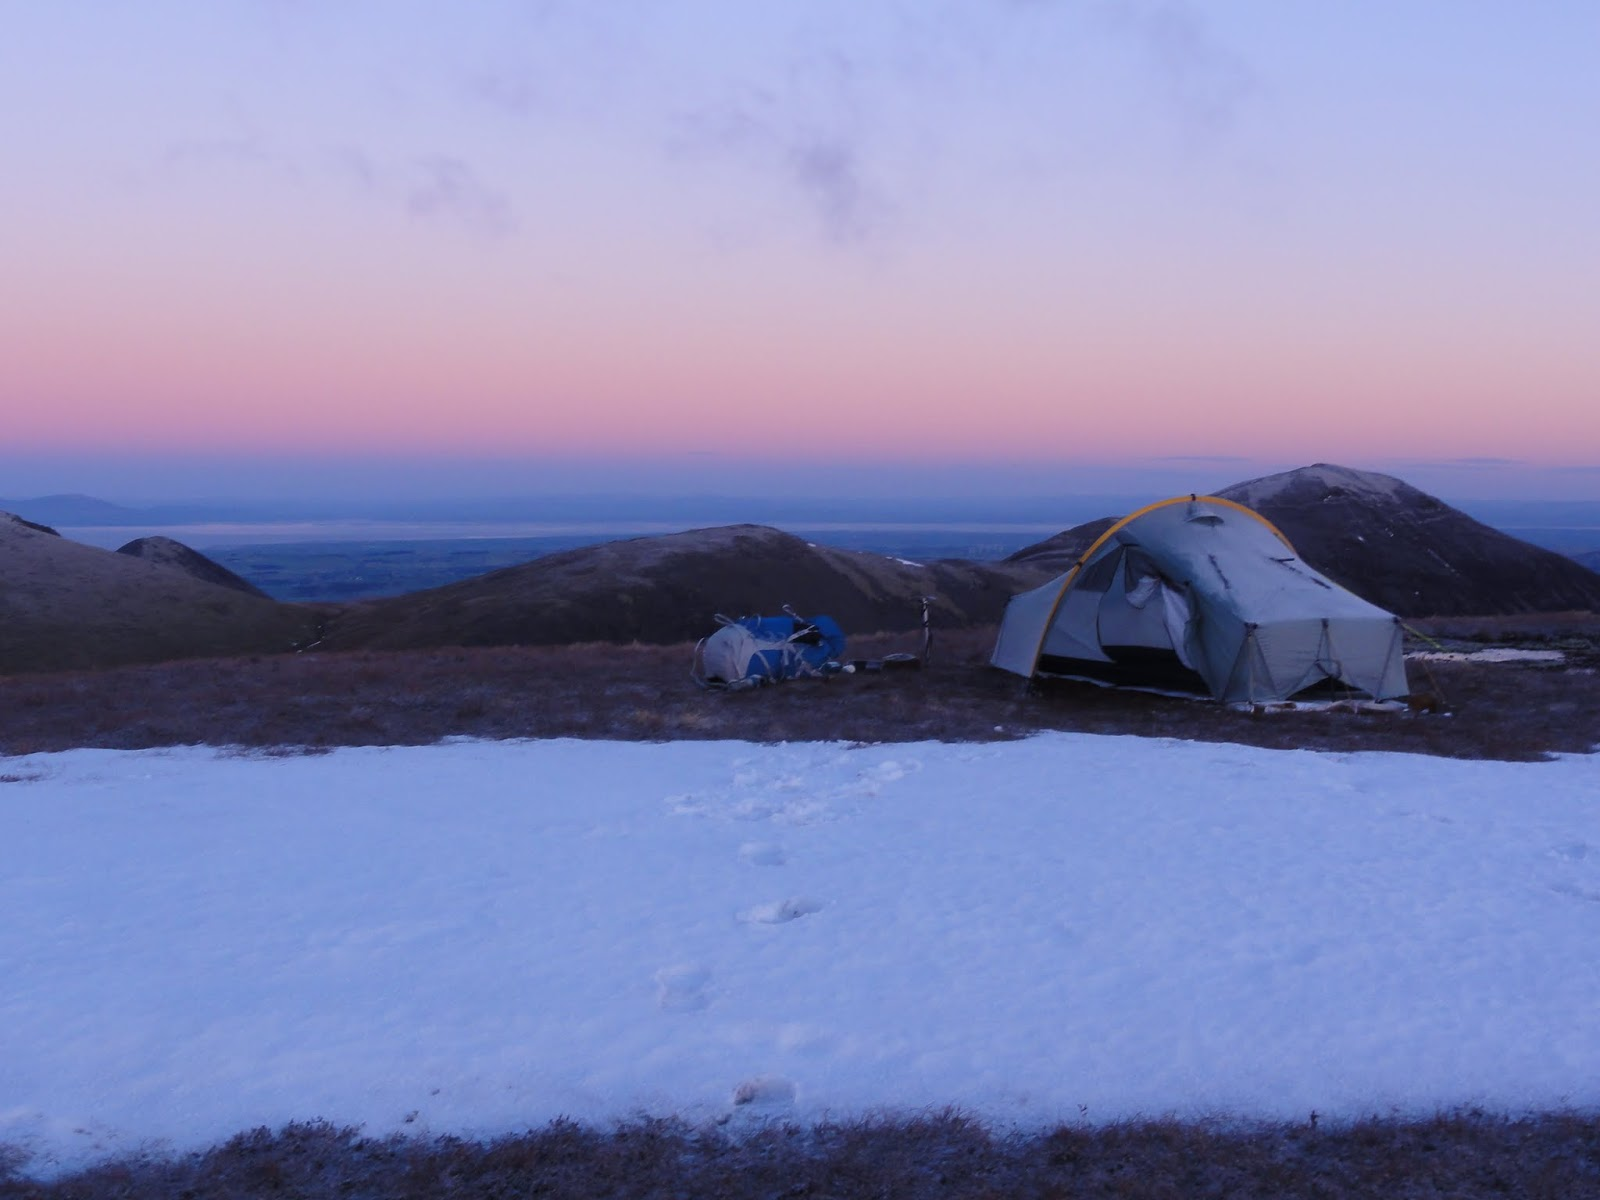 Sdb Wanderings The Tarptent Scarp 1 Tent An Opinion